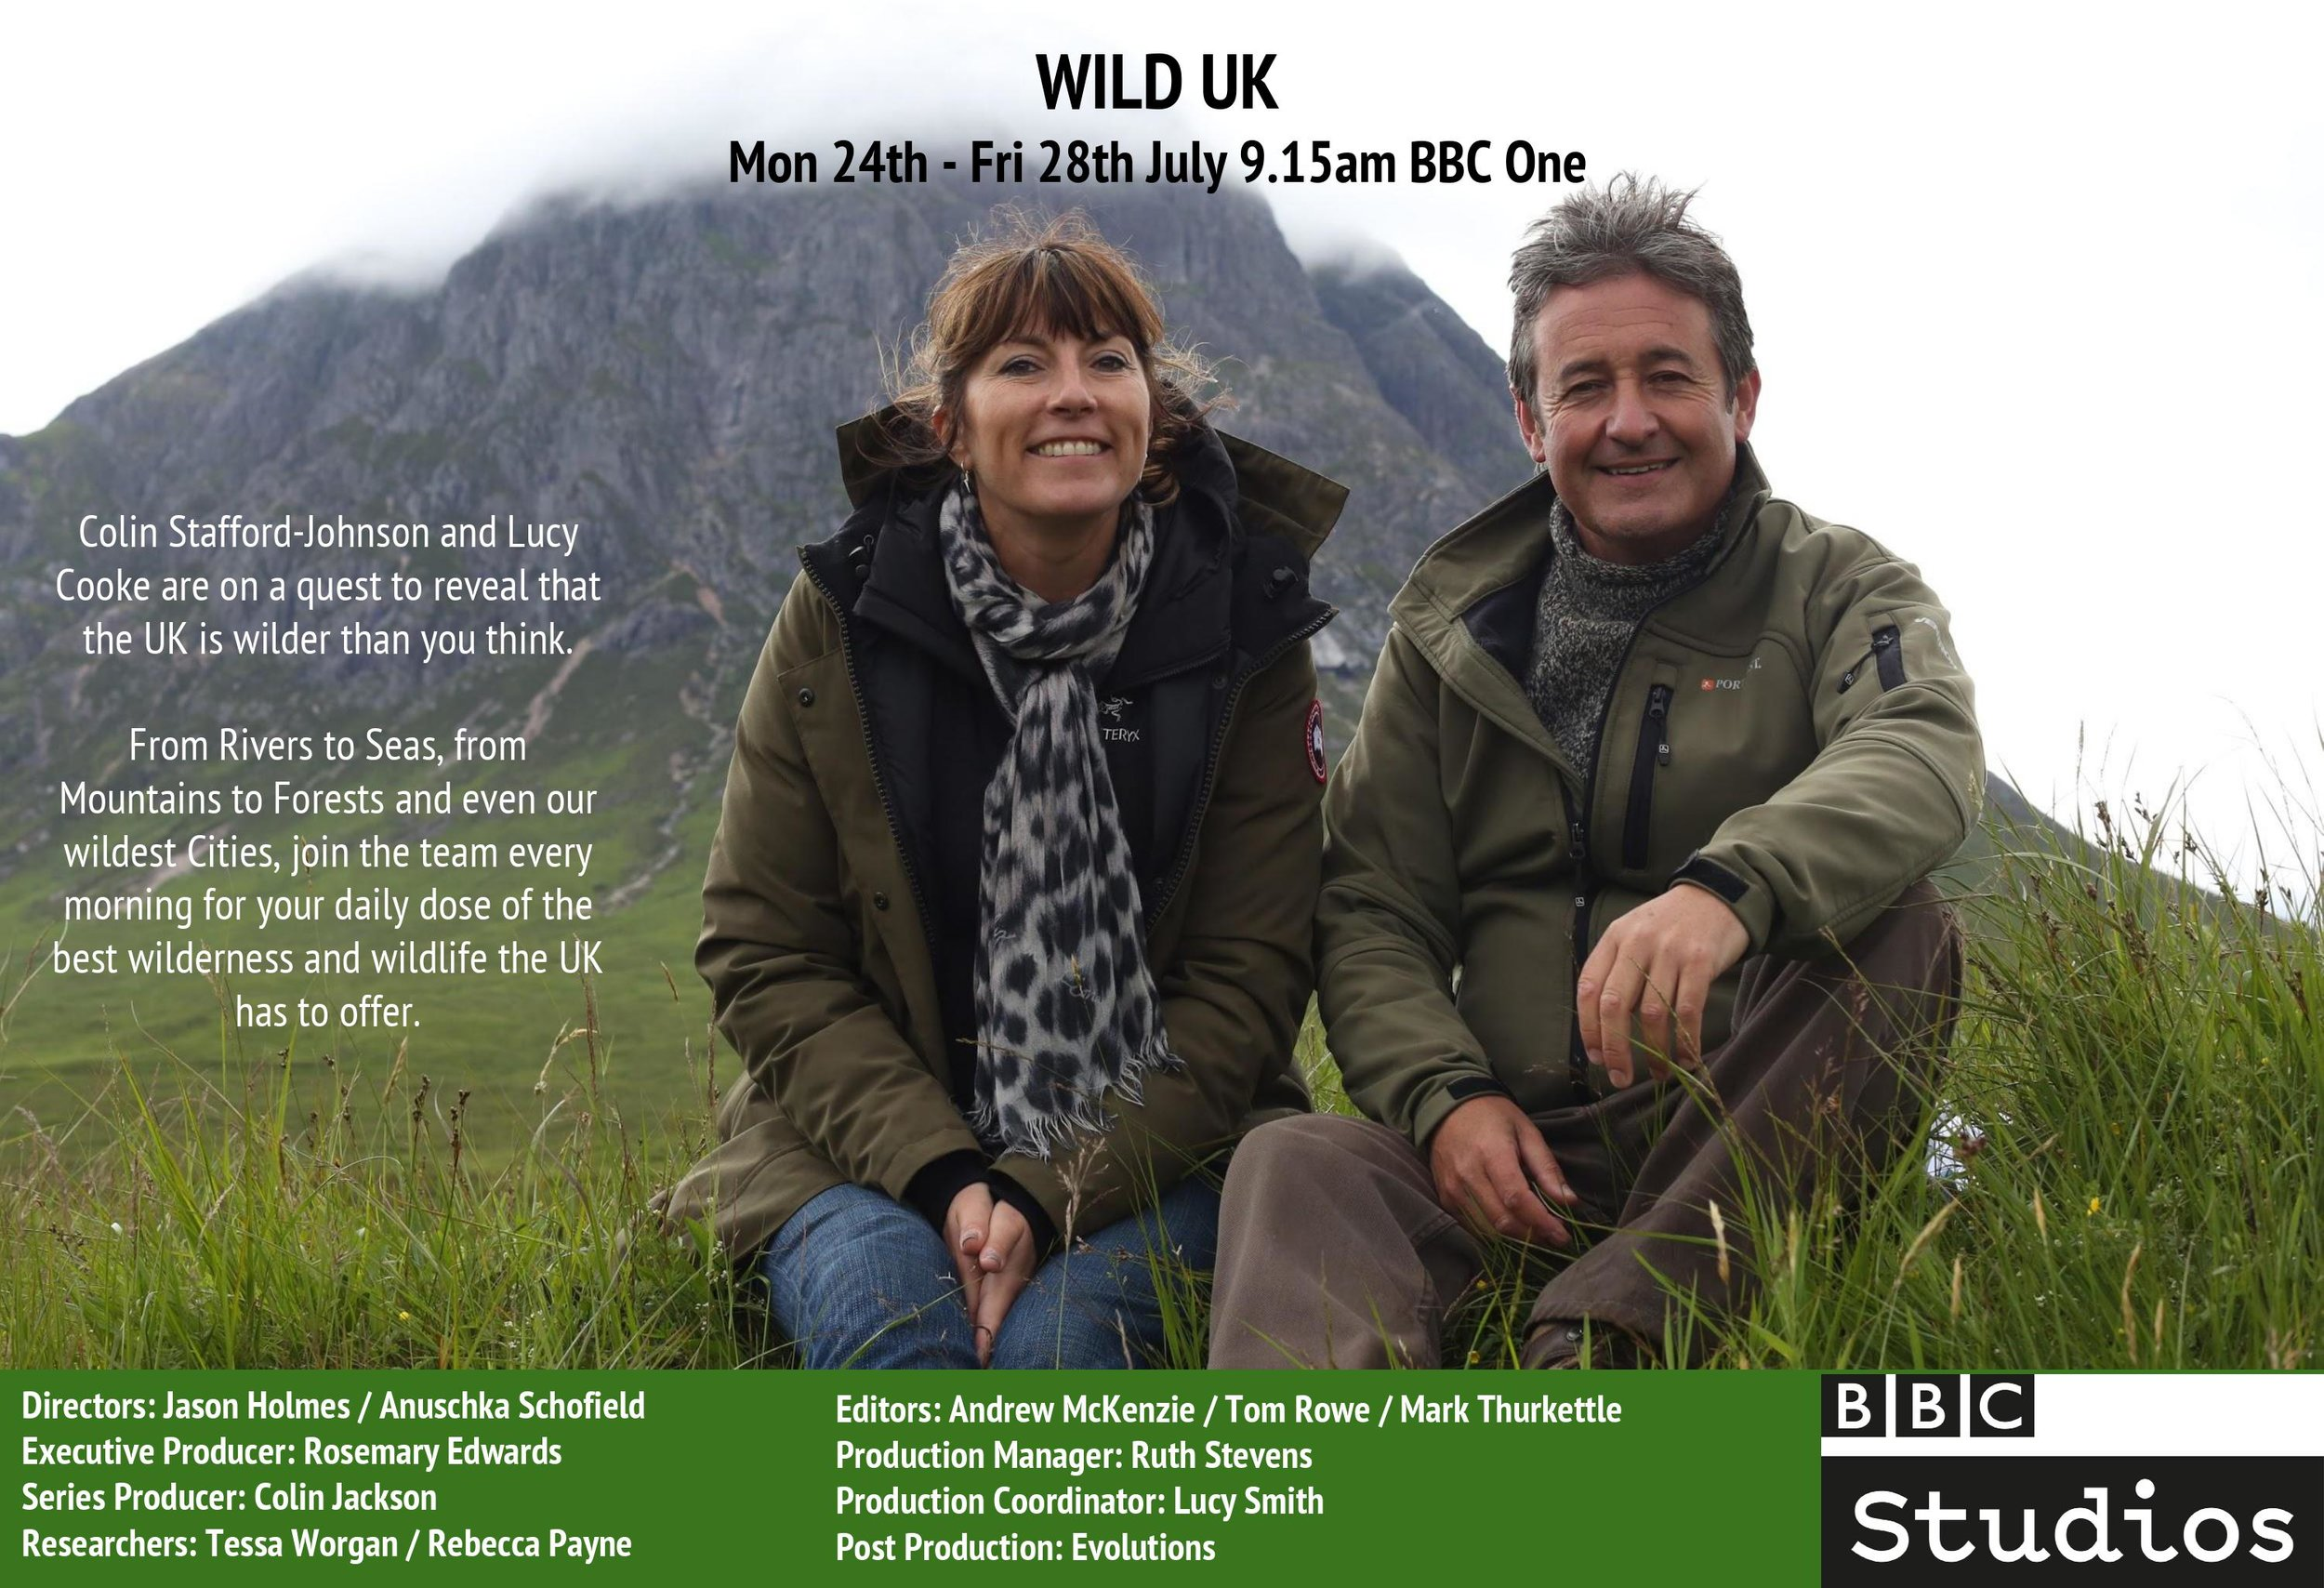 Colin Stafford-Johnson and Lucy Cooke are on a quest to reveal that the UK is wilder than you think. Wild UK transmits everyday at 09:15am on BBC One (Monday 24th - Friday 28th July)